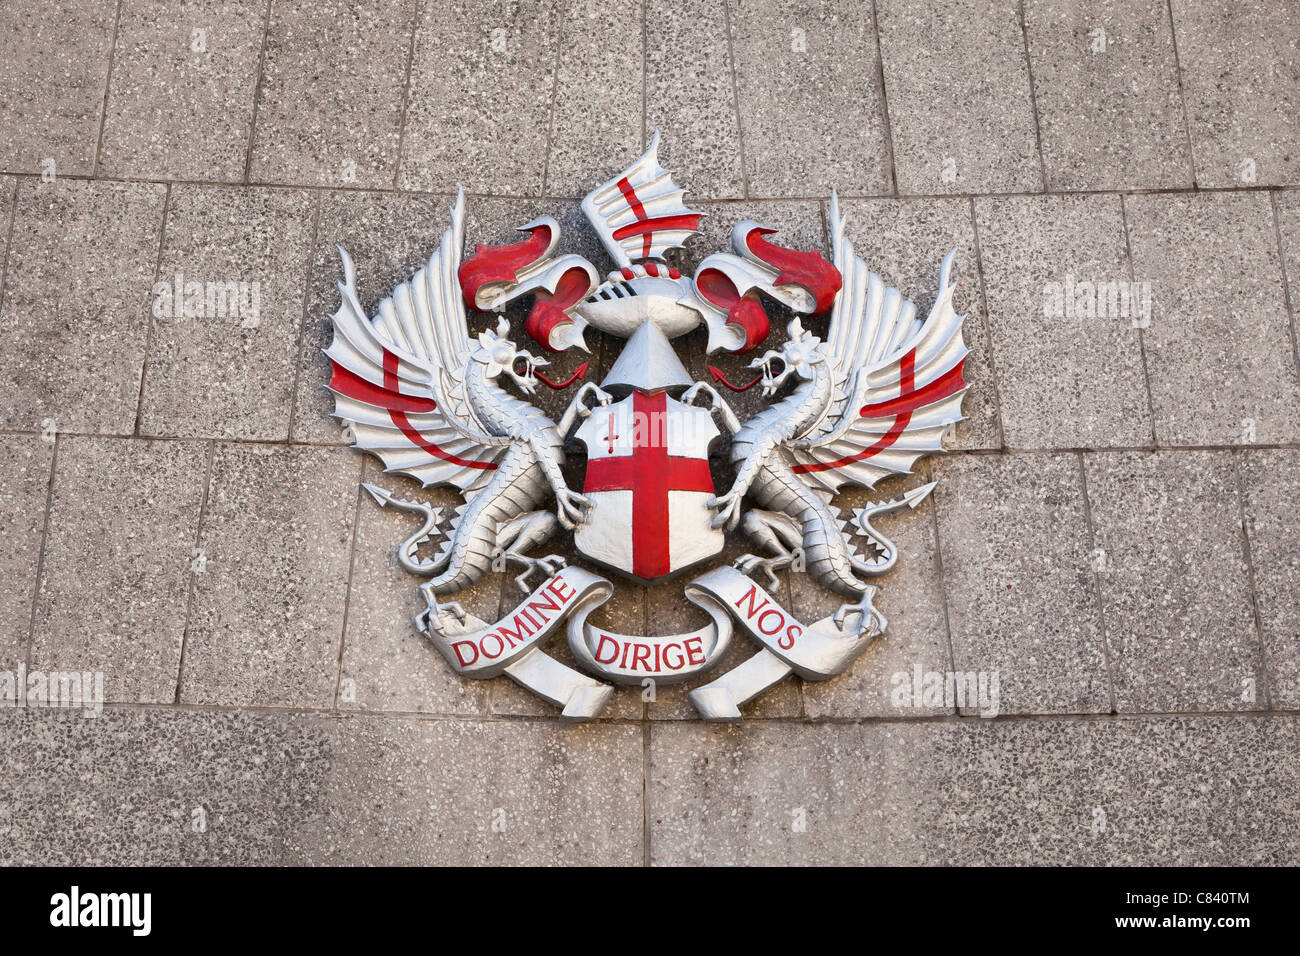 The coat of arms for the City of London Corporation, London, UK. - Stock Image